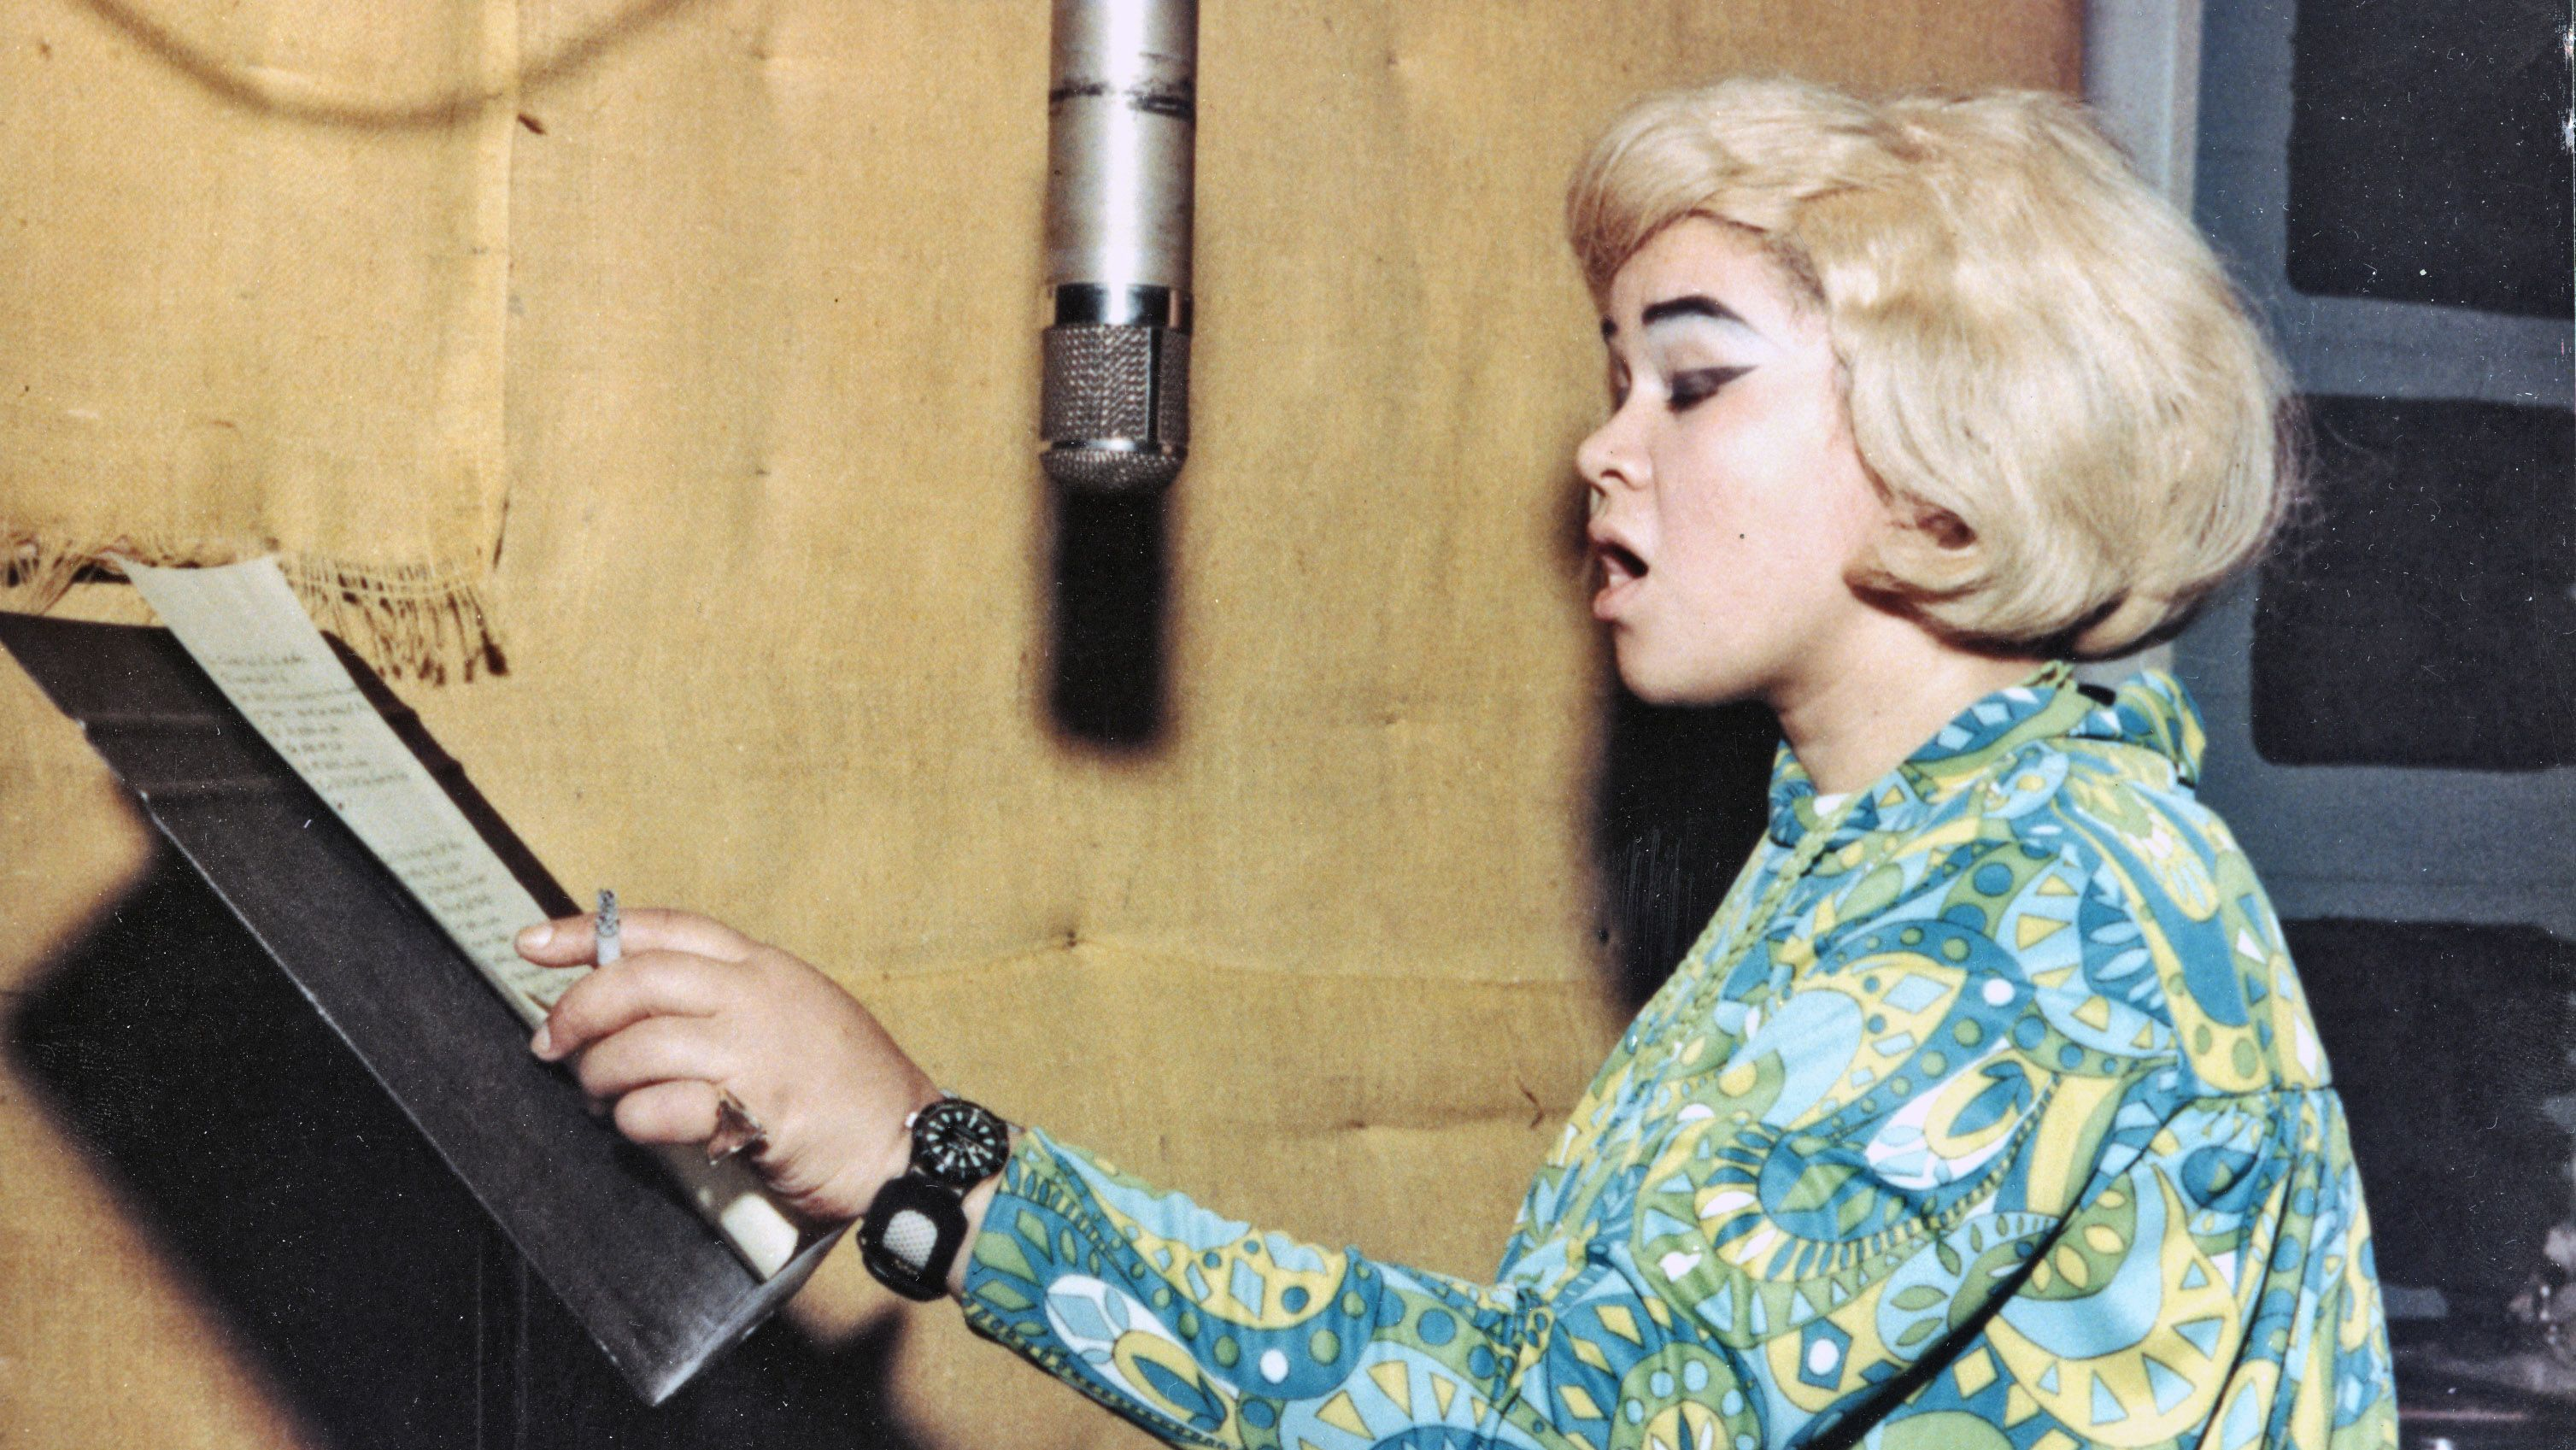 We celebrate what would have been Etta James' birthday.